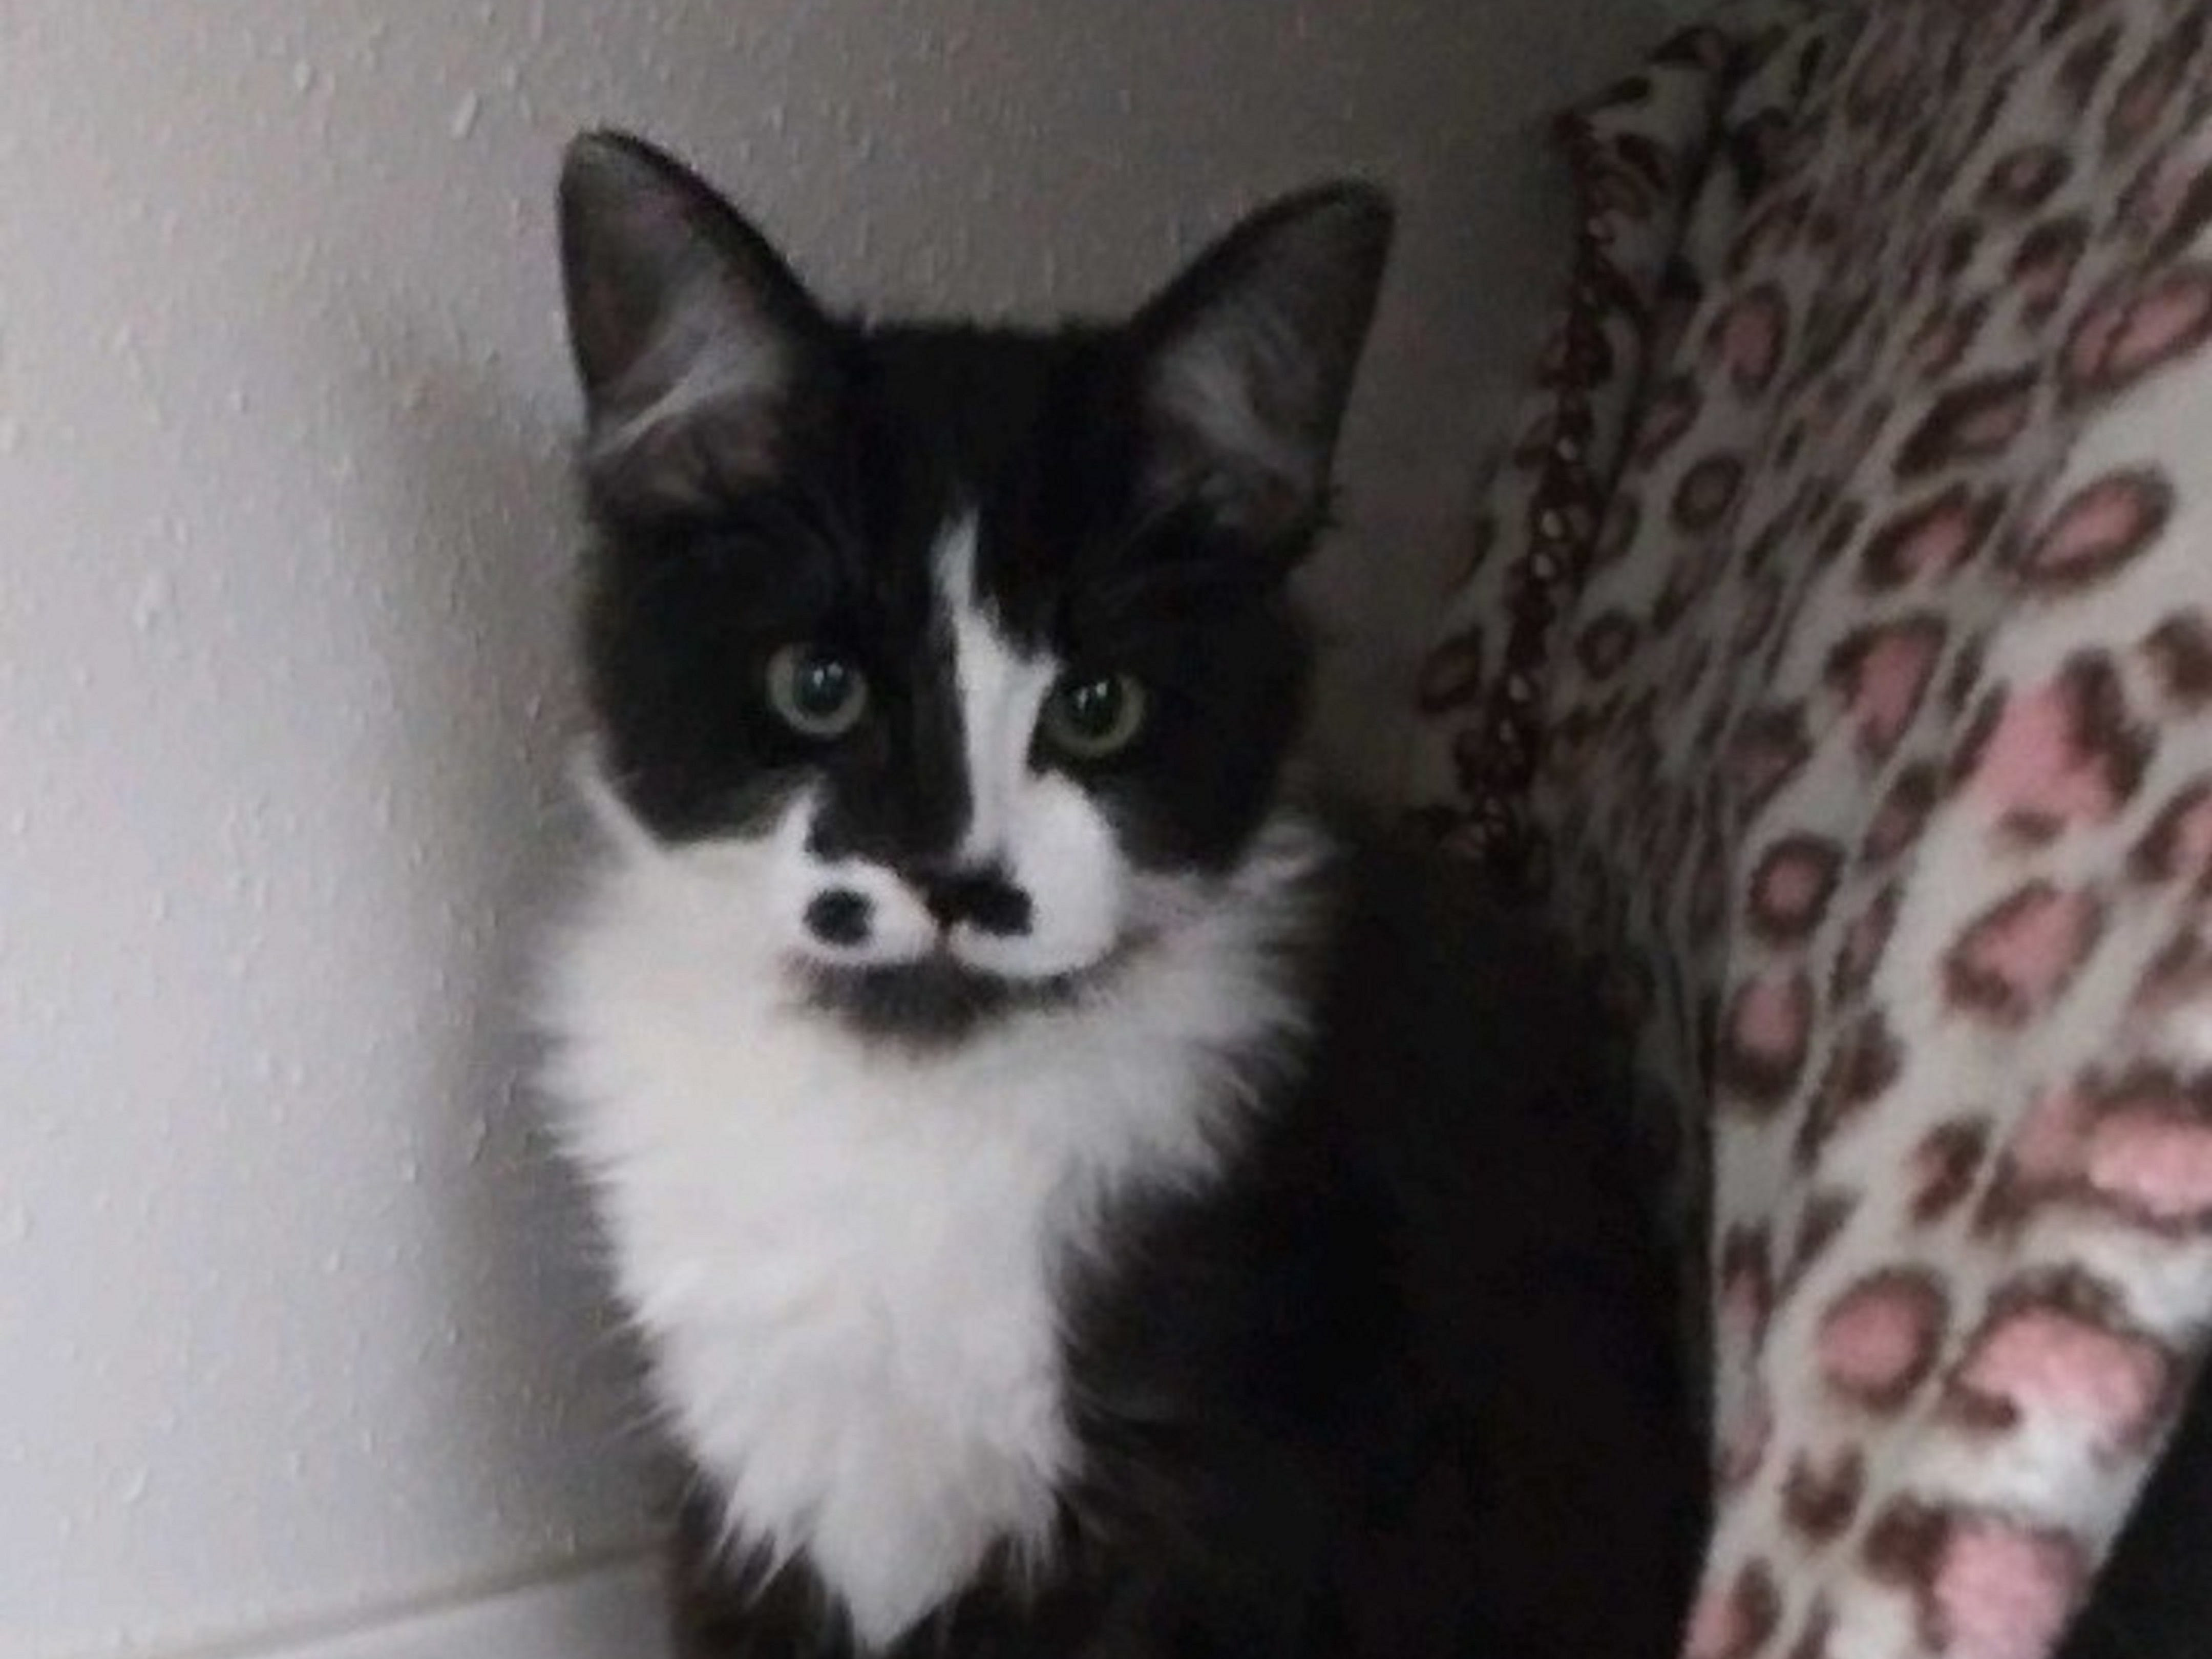 Mickey is a 4-month-old male kitten. He's sweet tempered. He and his brother Donald are up for adoption. Raining Cats N Dogs adoptions include spay/neuter services, vaccines and vetting as needed. Call 232-6299. Go to http://rainingcatsndogs.rescuegroups.org.